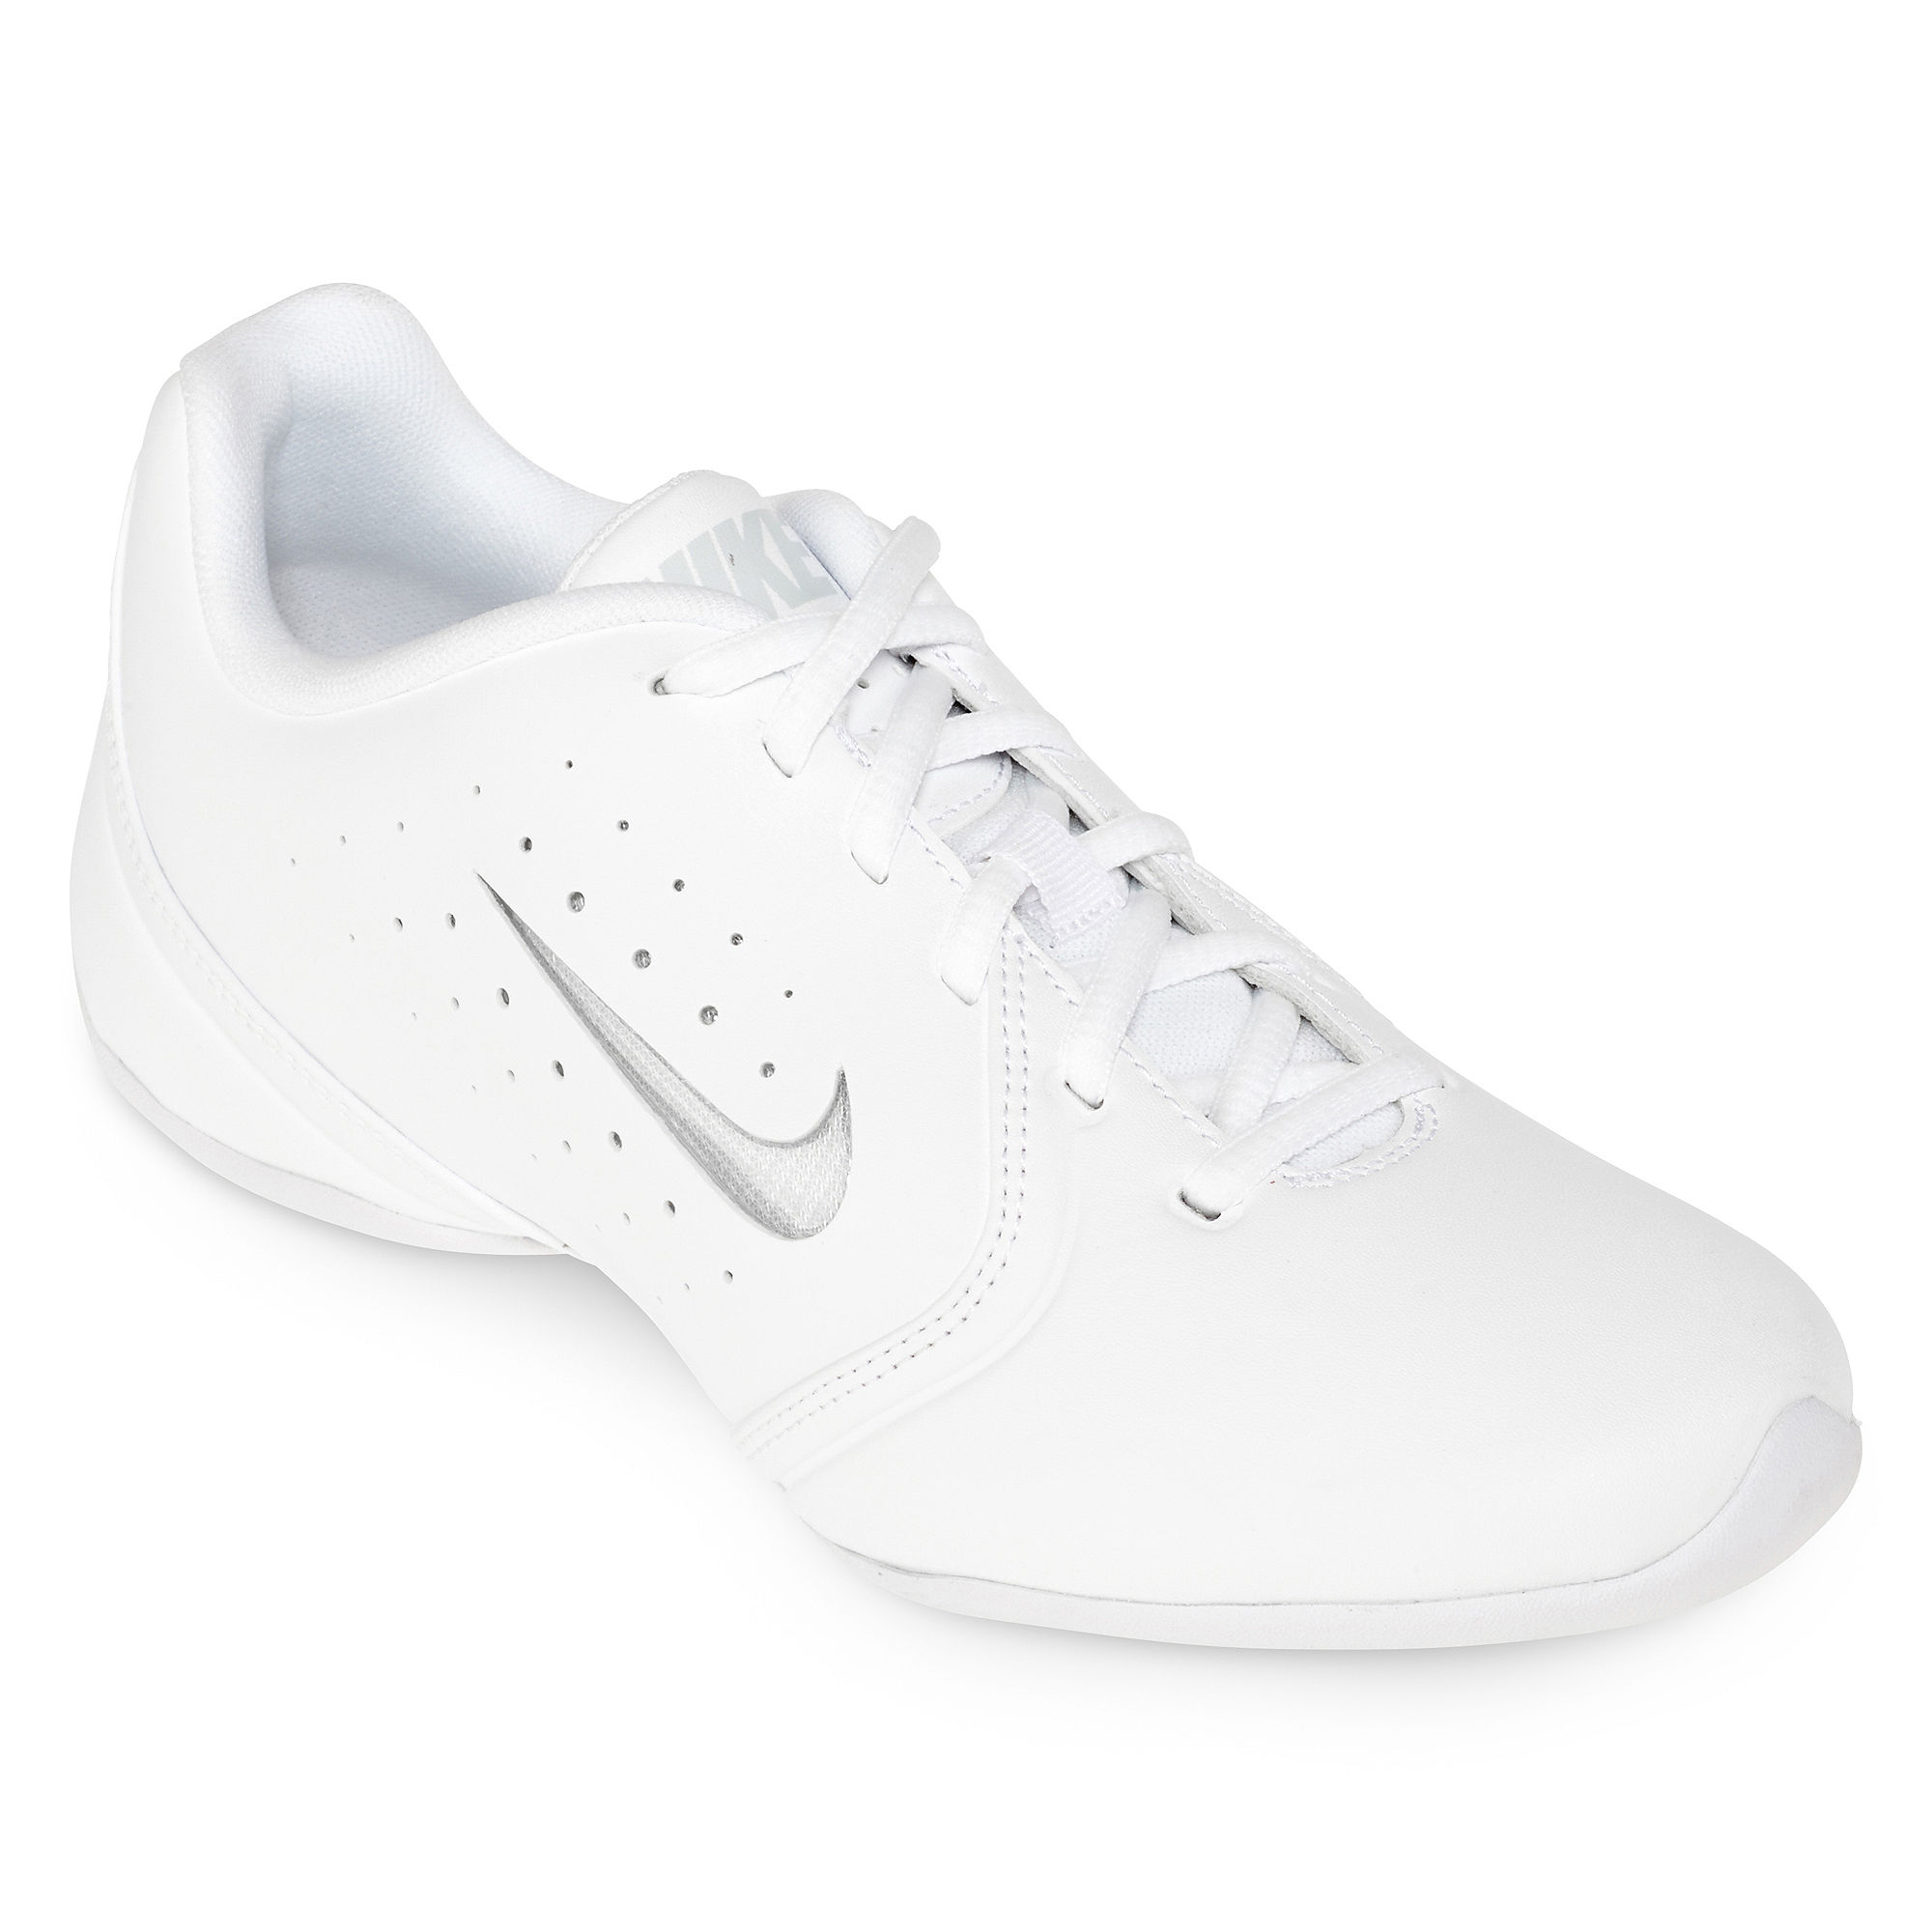 0fb242468a9e ... UPC 884802335481 product image for Nike Sideline III Womens  Cheerleading Shoes